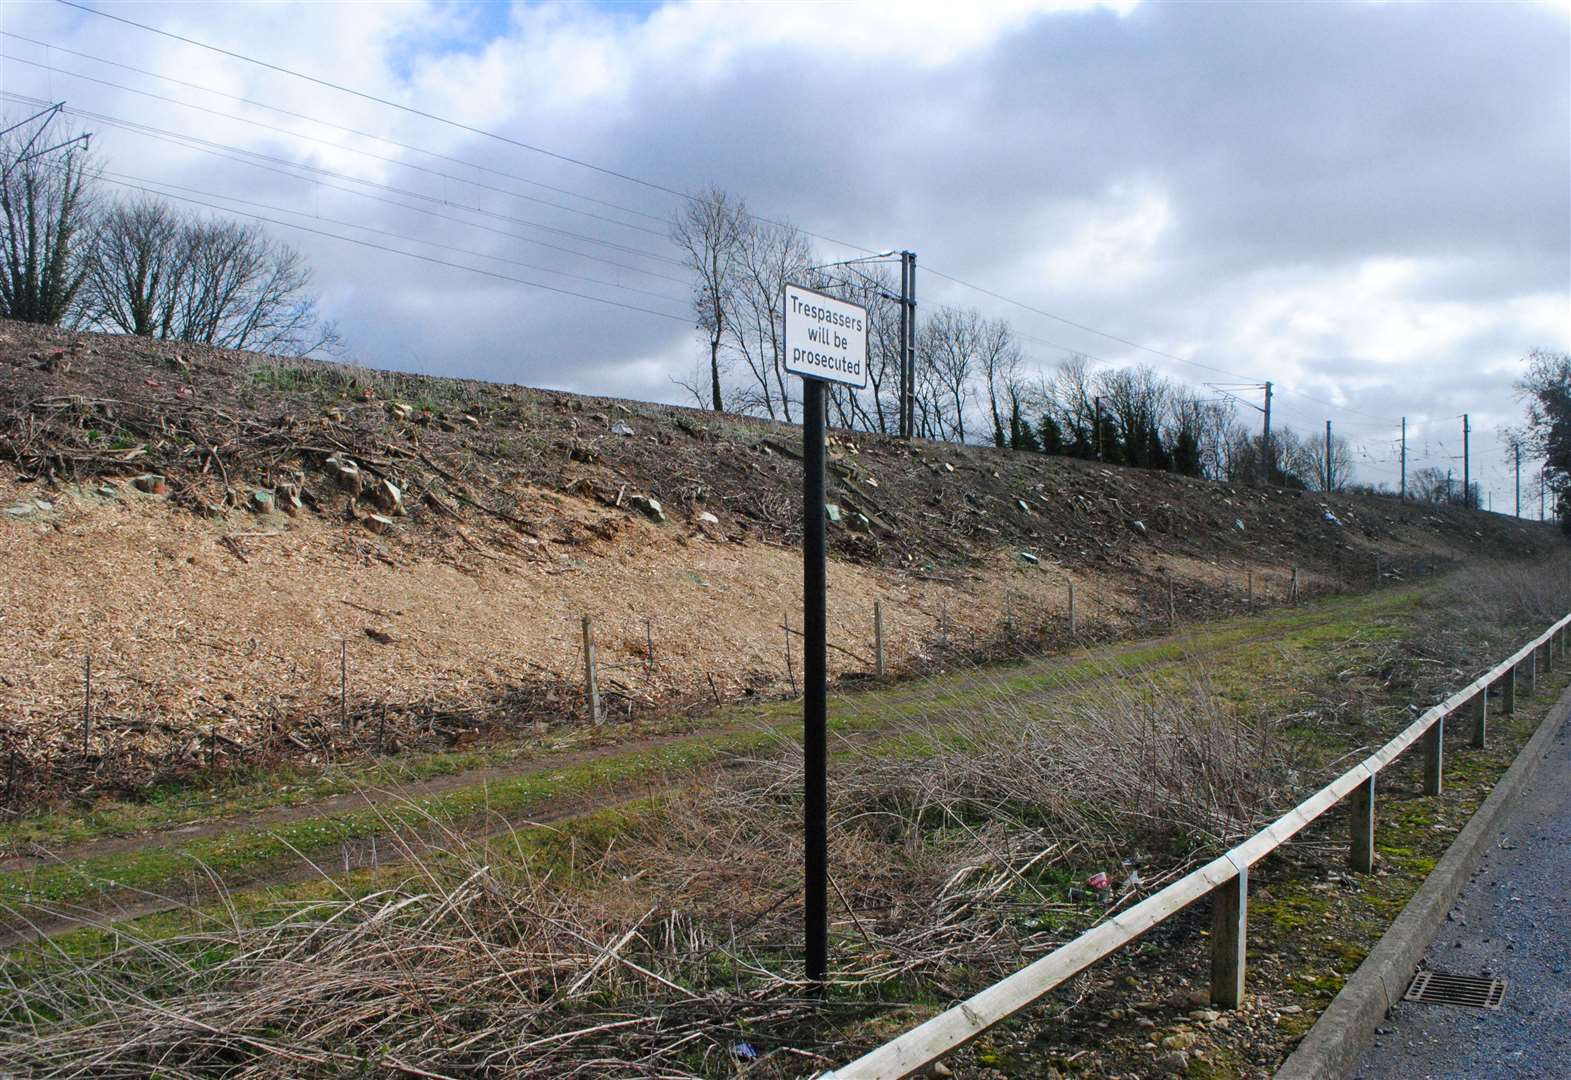 Scores of trees felled next to railway line in Grantham